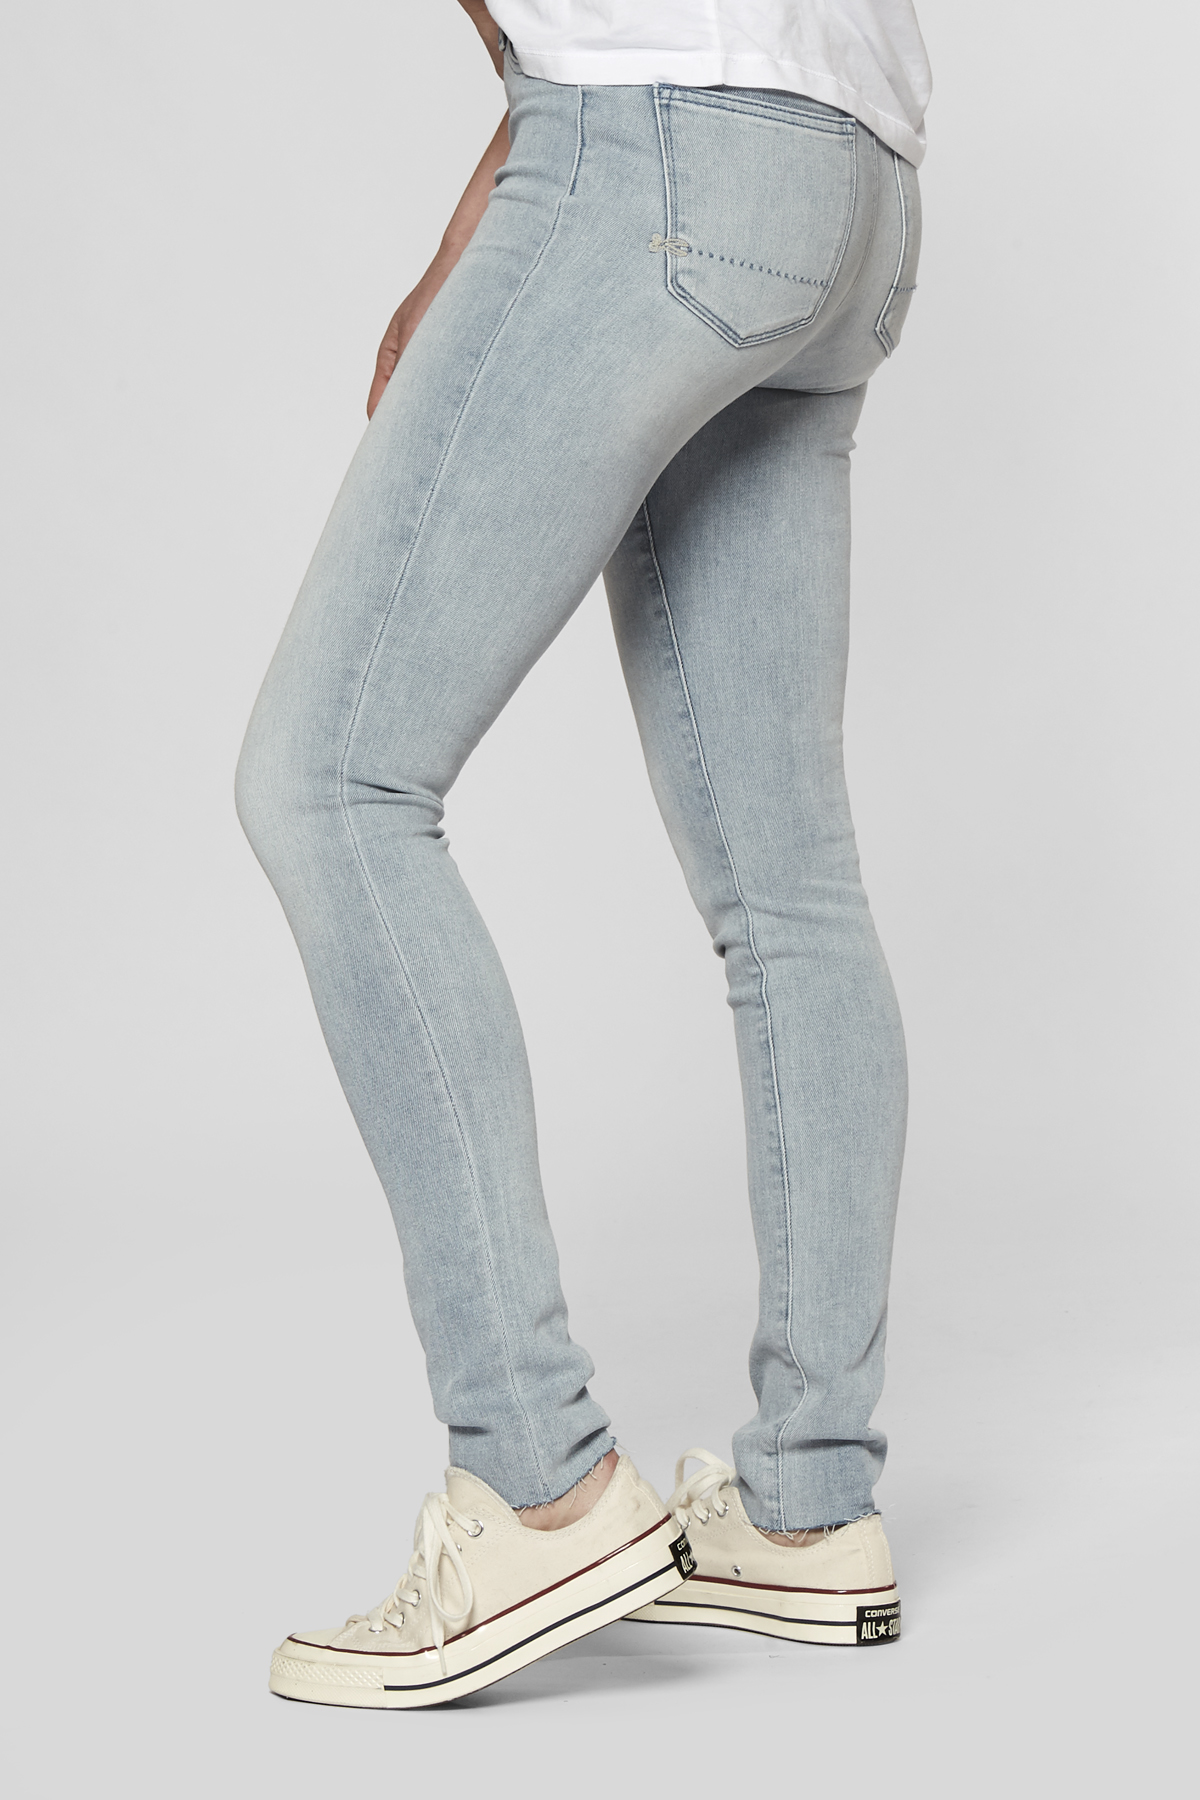 Needle High Skinny Fit Jeans - SS